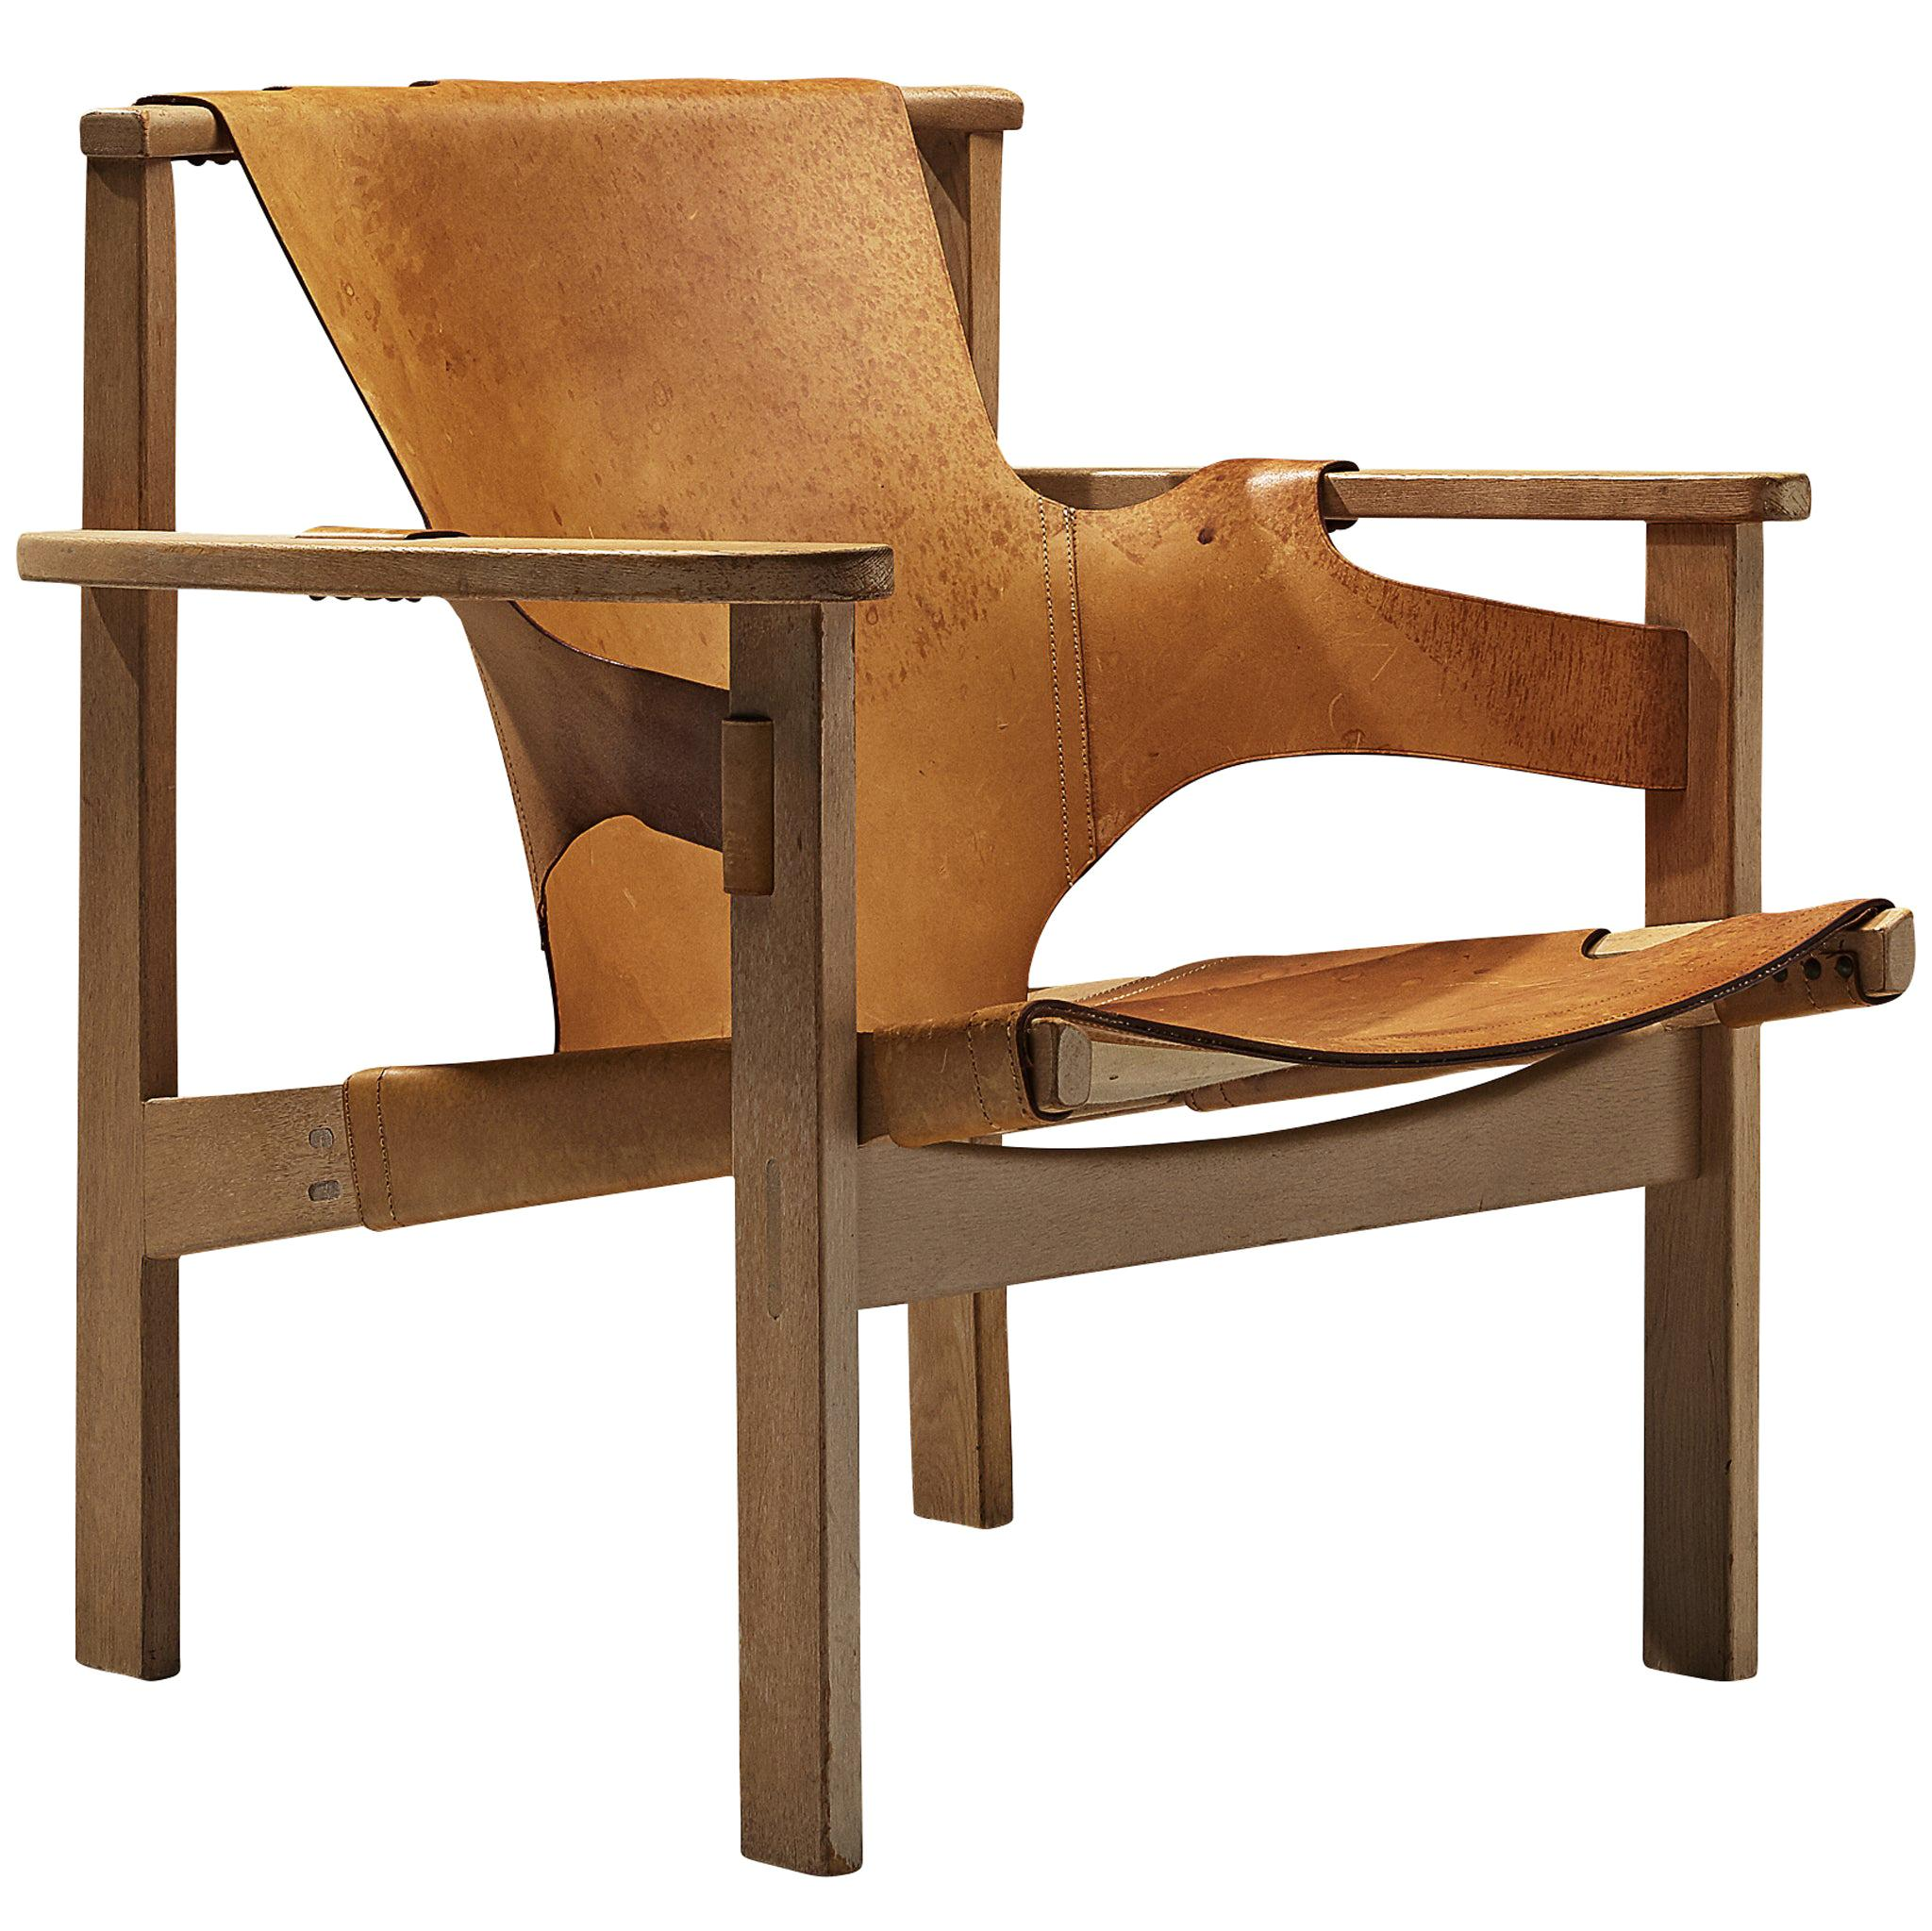 Carl-Axel Acking 'Trienna' Chair in Patinated Cognac Leather